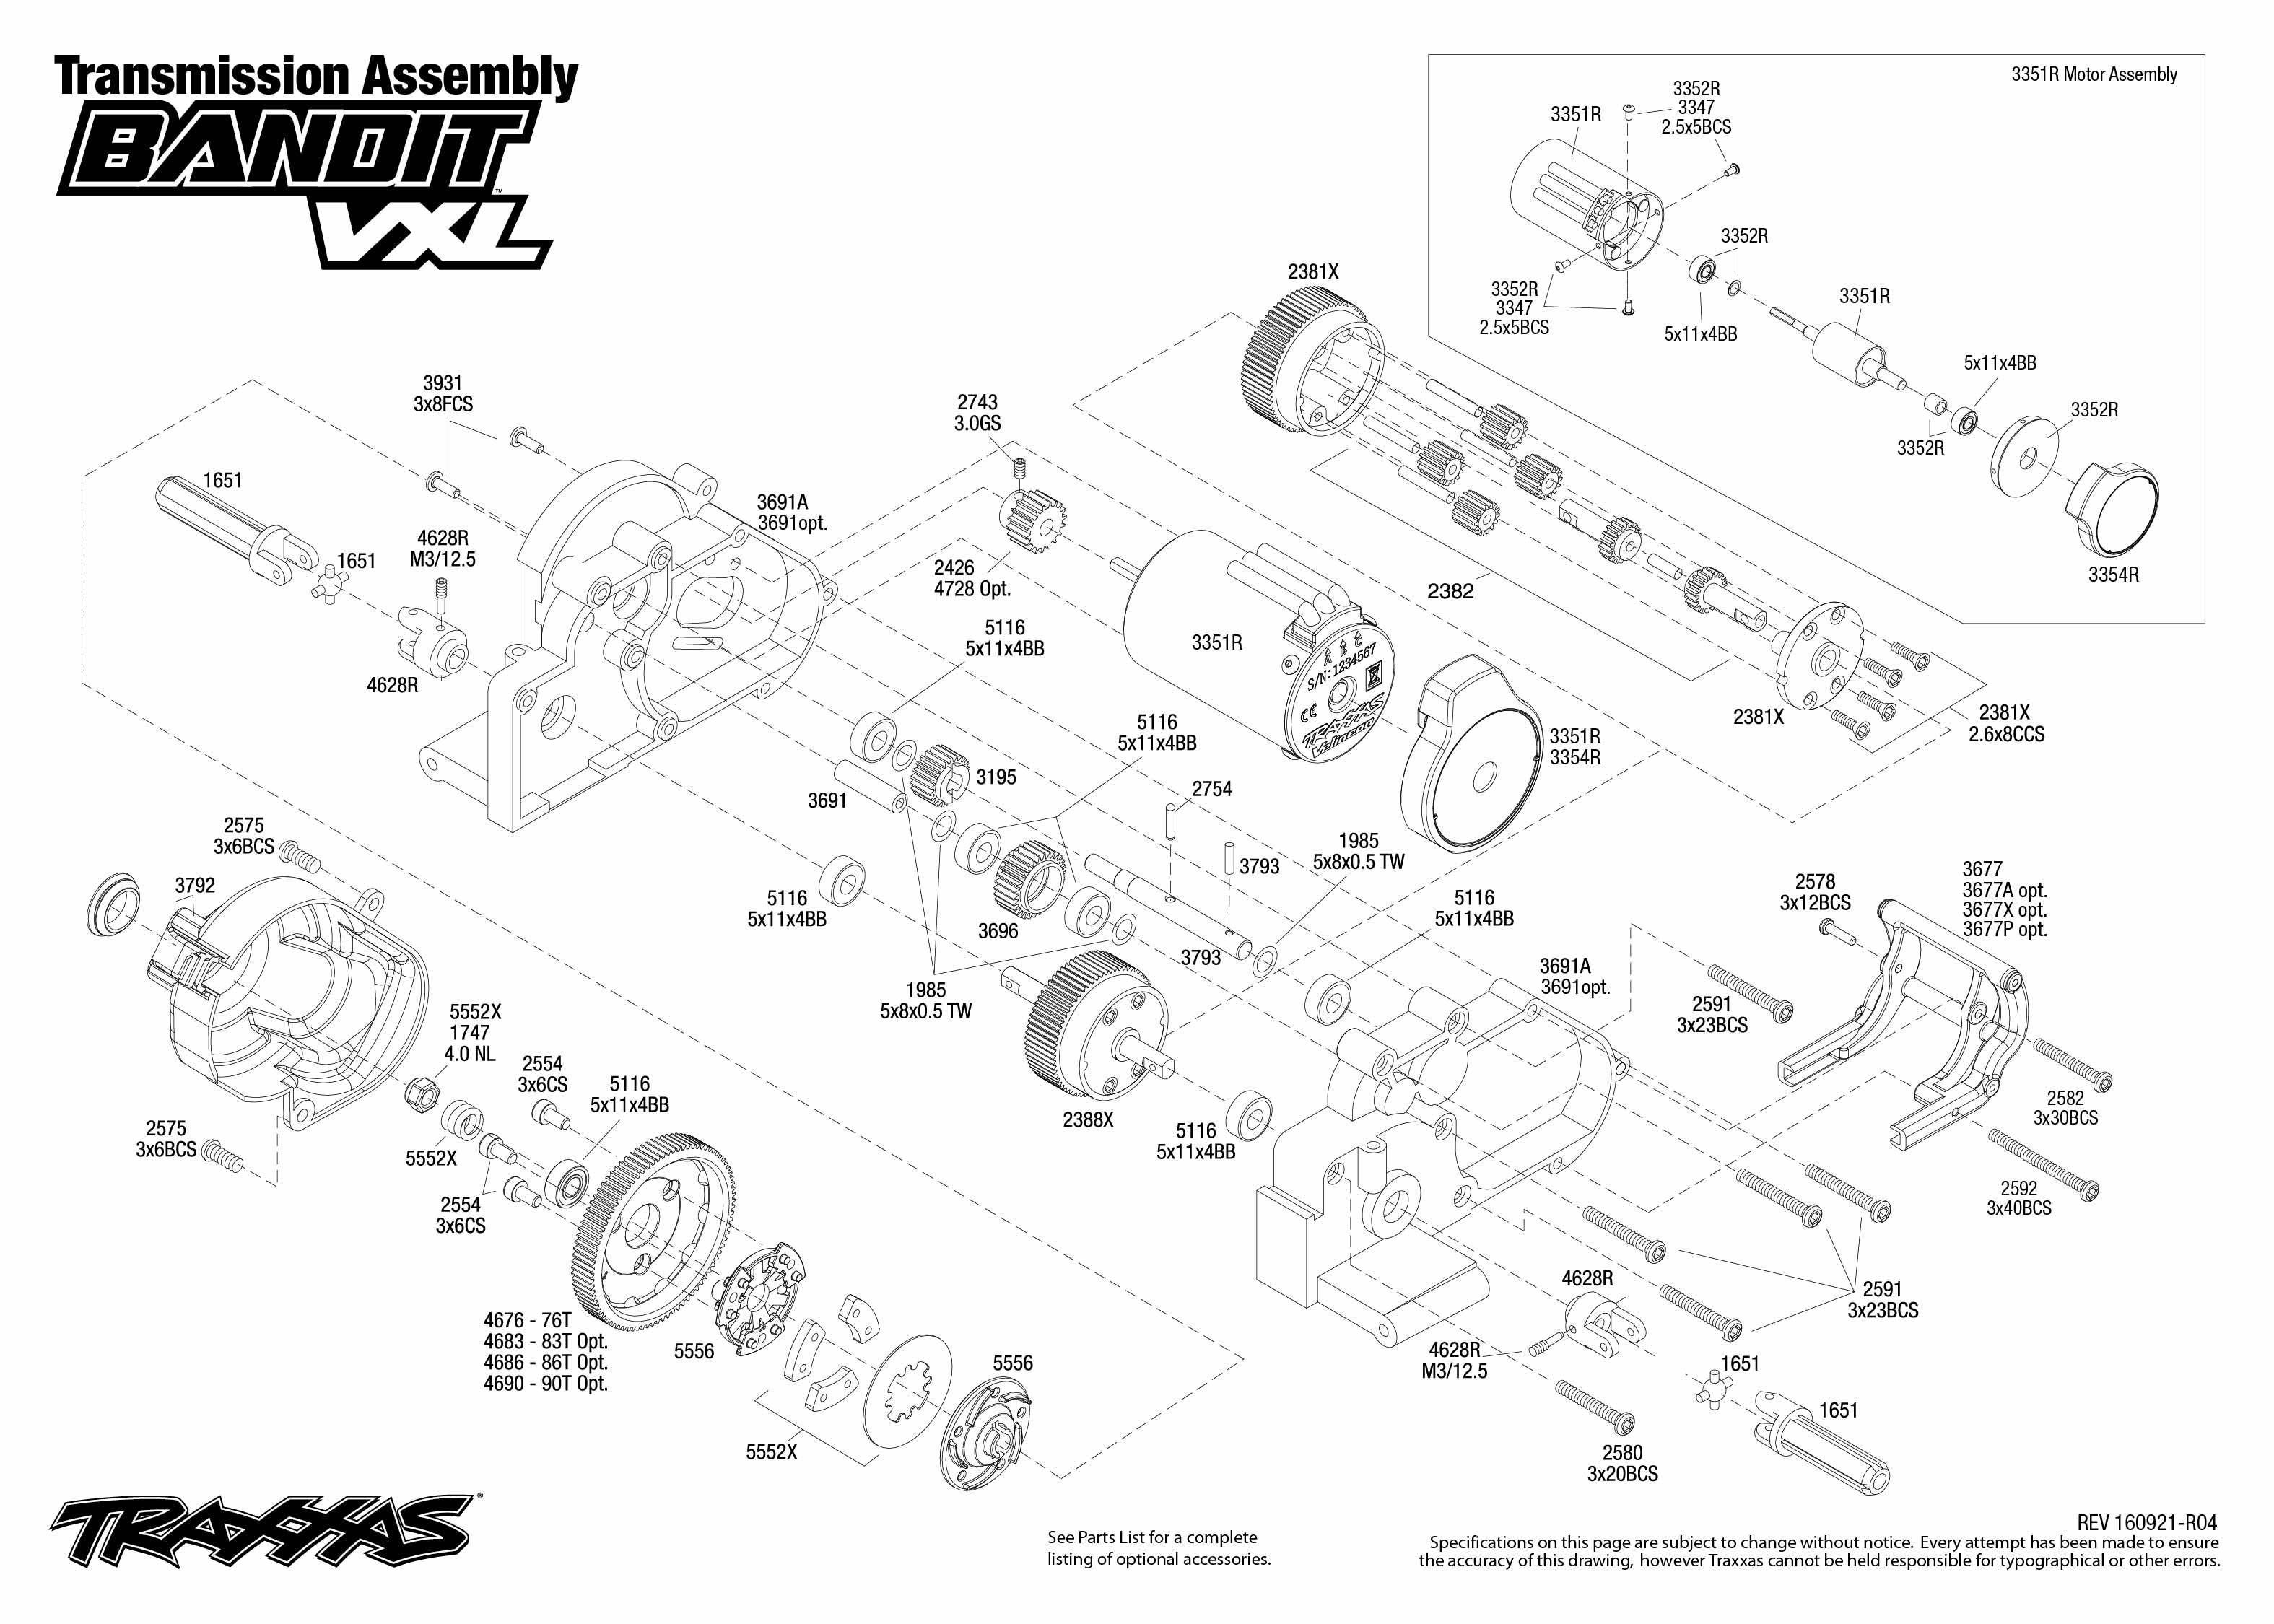 Outstanding traxxas stede 4x4 parts diagram ideas best image outstanding traxxas stede 4x4 parts diagram ideas best image pooptronica Images